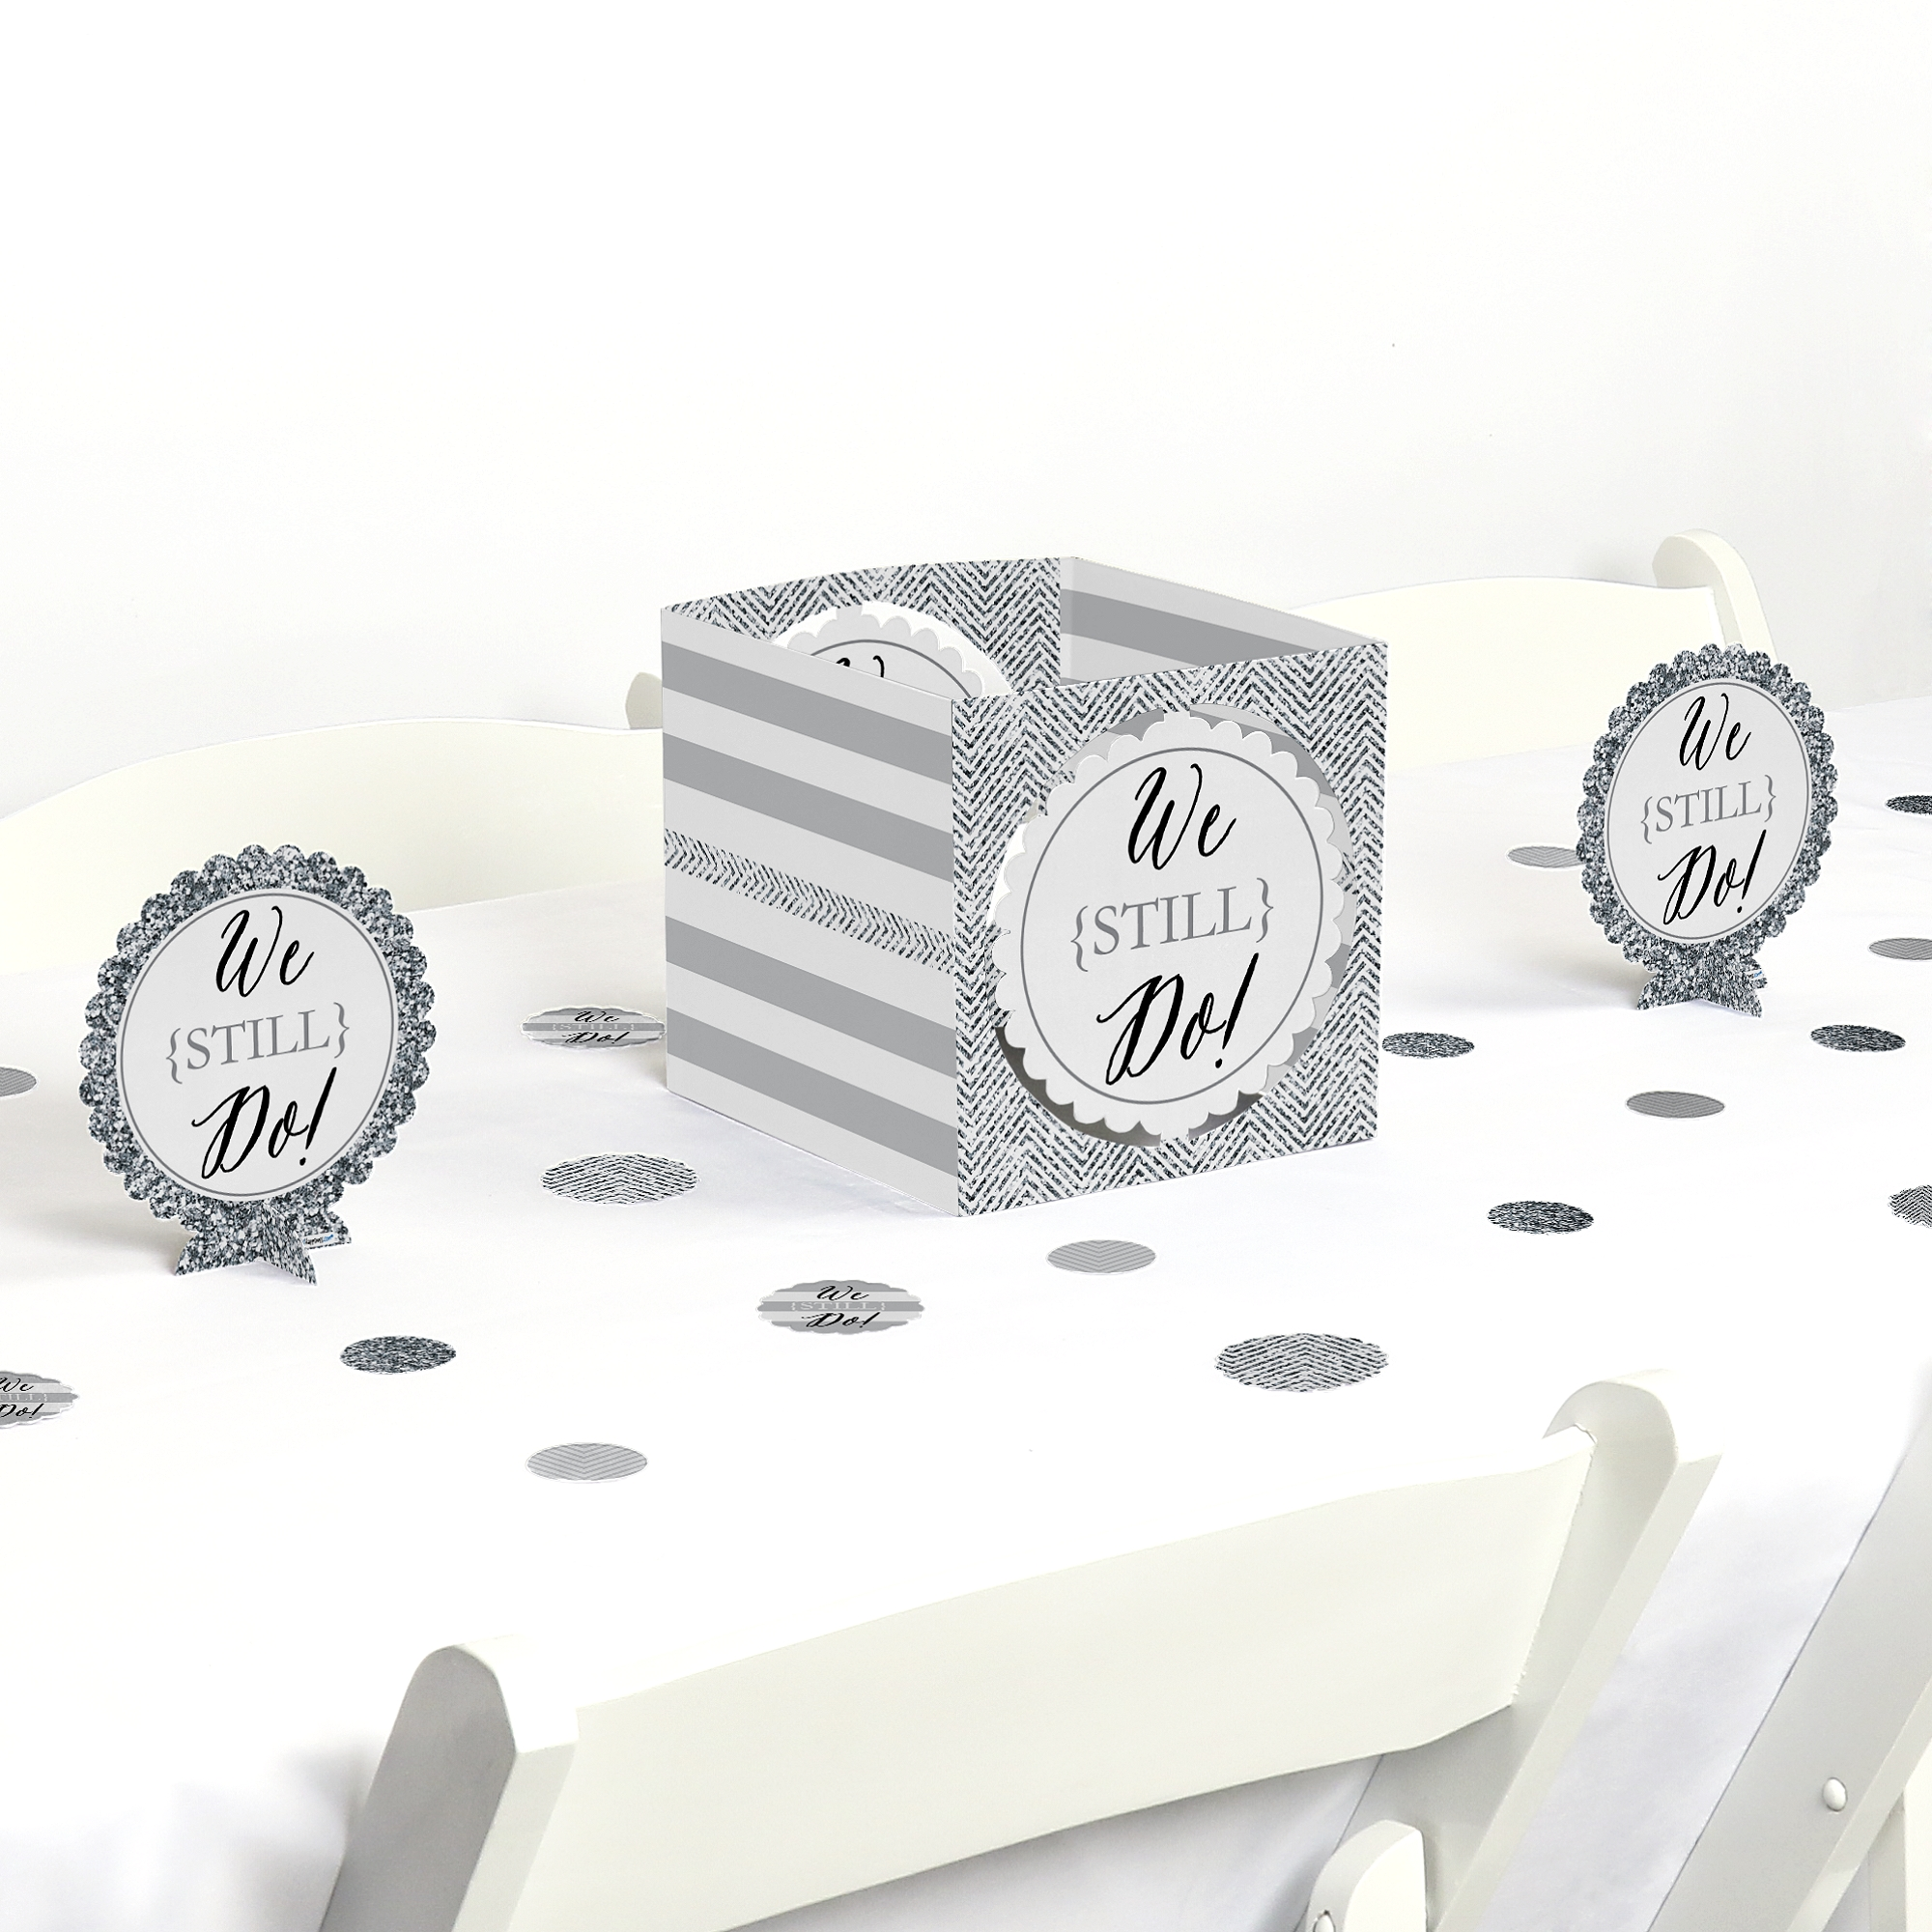 We Still Do - Wedding Anniversary - Party Centerpiece & Table Decoration Kit